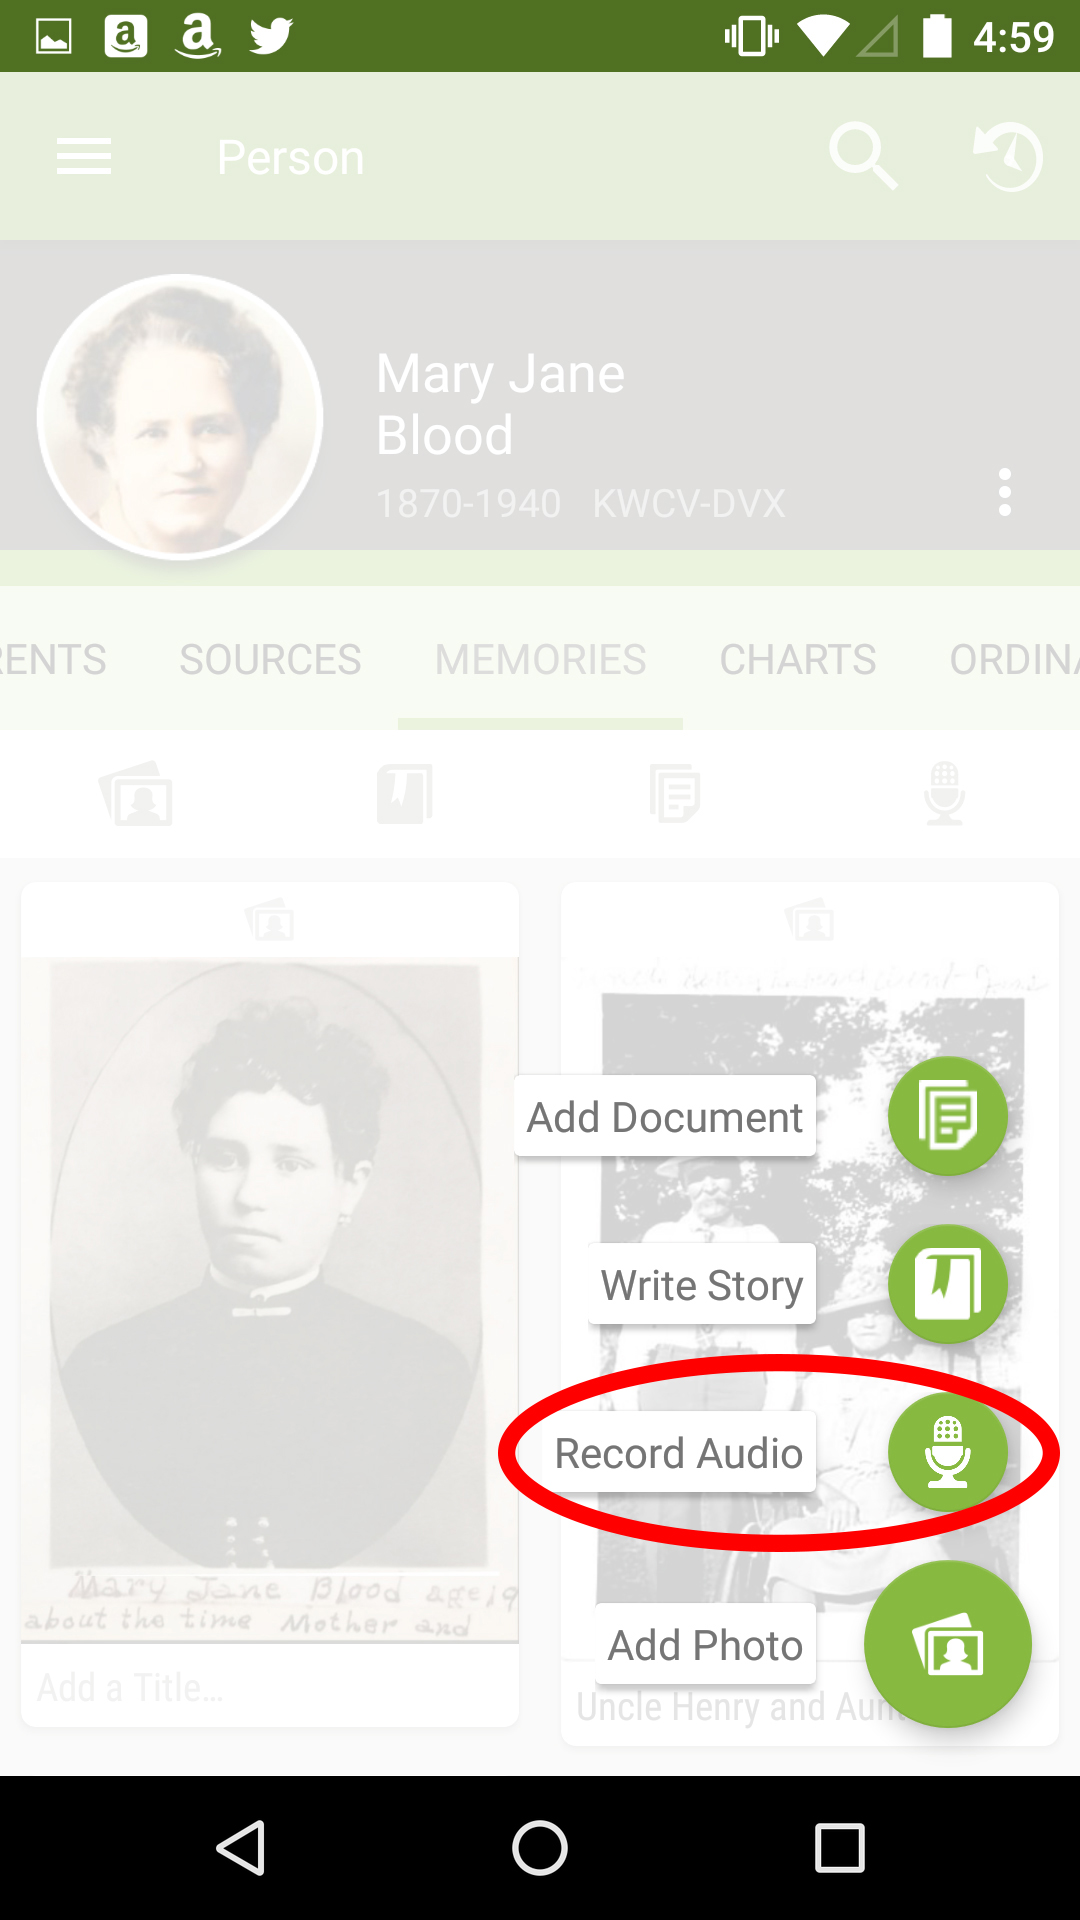 Using FamilySearch Apps to Record Oral Histories